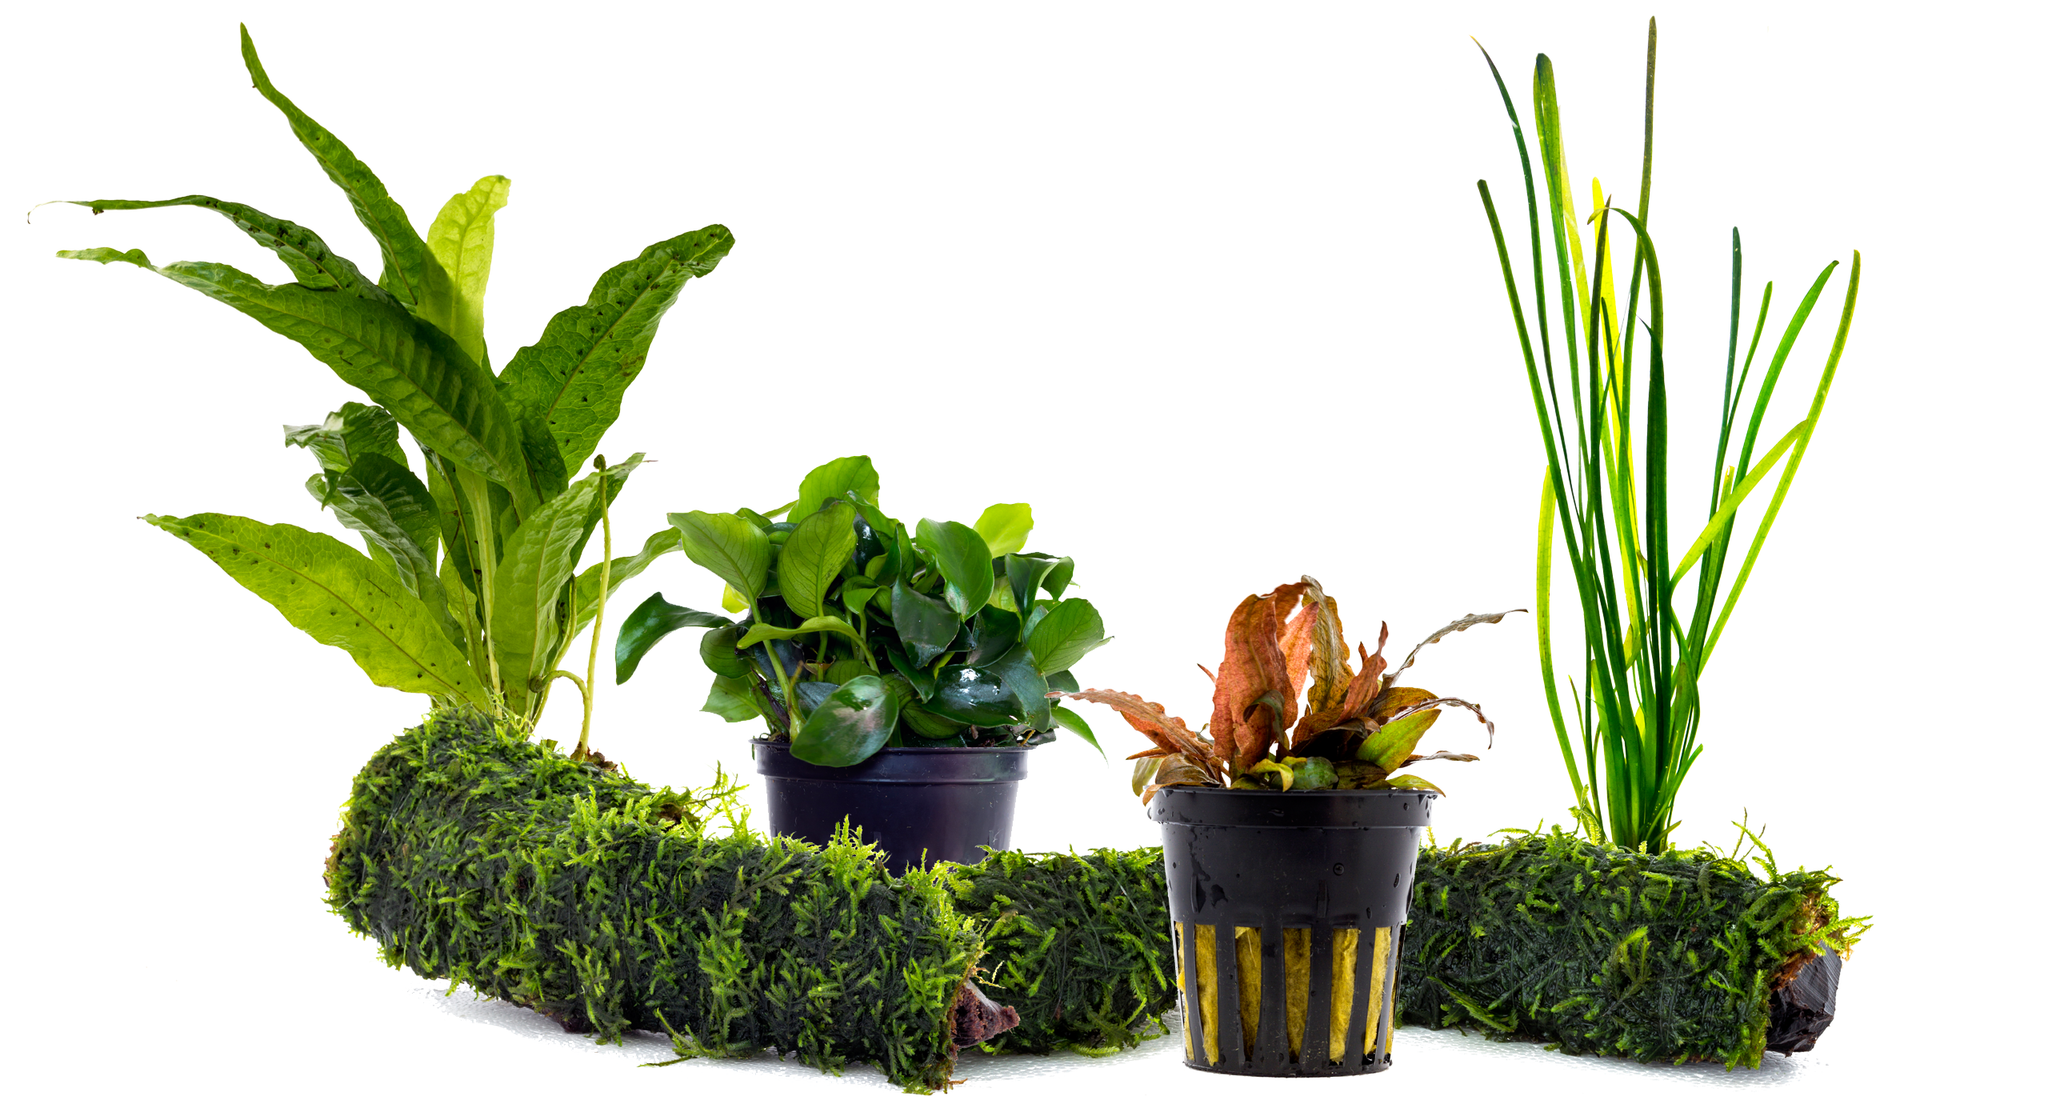 5 Easy Aquarium Plants for Beginners